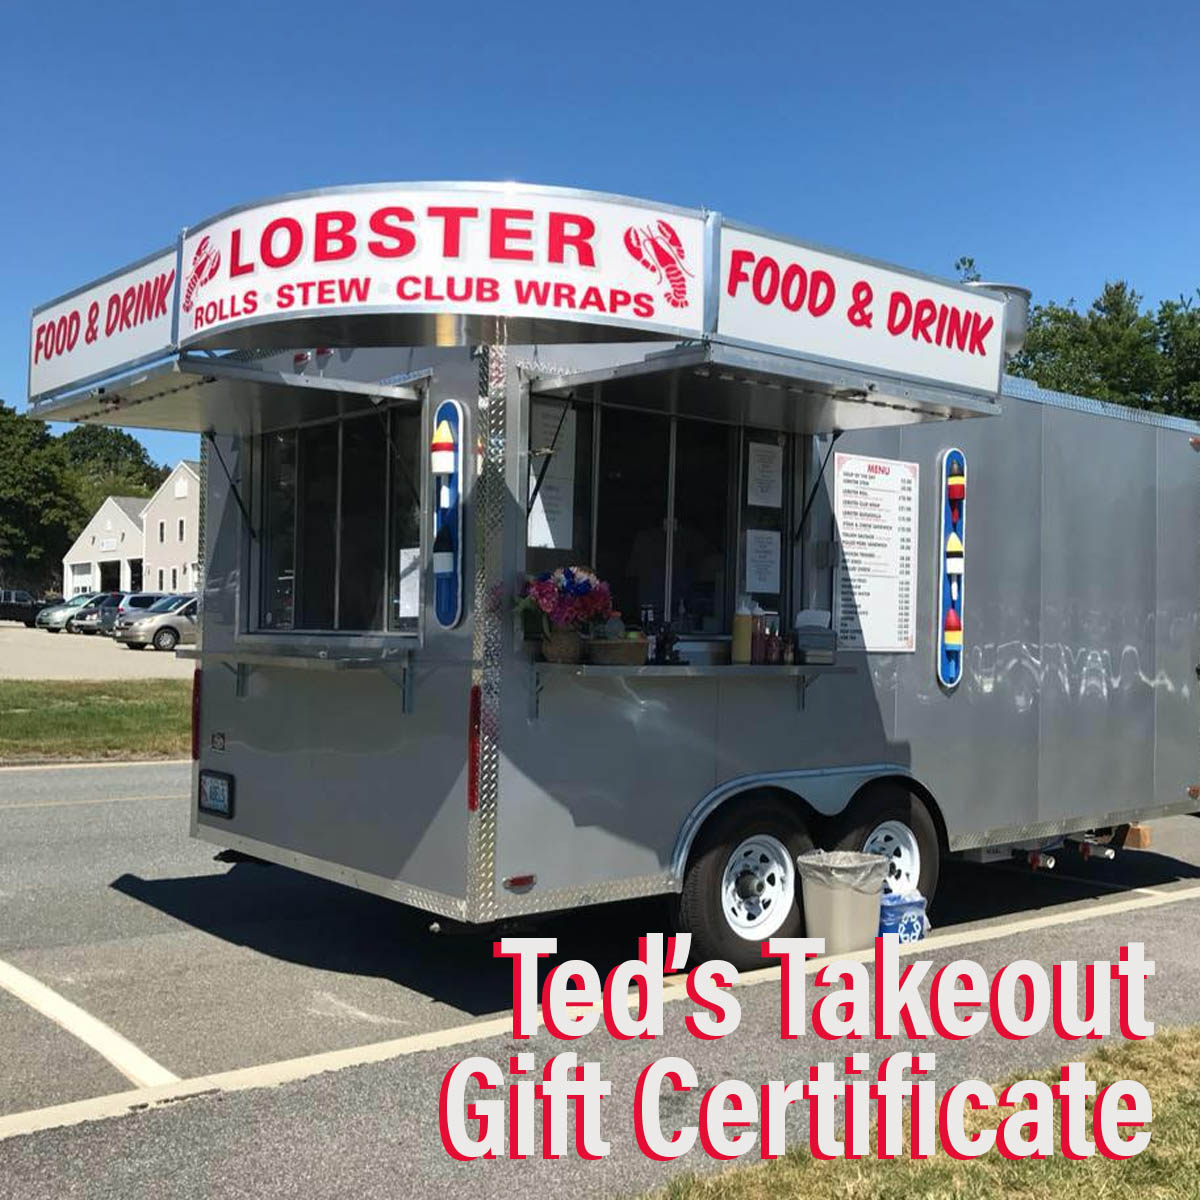 Ted's Takeout Certificate - Ted's takeout has generously provided this $50.00 certificate. Perfect to grab a delicious lunch on-the-go this busy summer season, or treat yourself after a morning on the trail. From classic lobster rolls to wraps, ice cream, and more— there's something for everyone at Ted's!Retail Value: $50.00